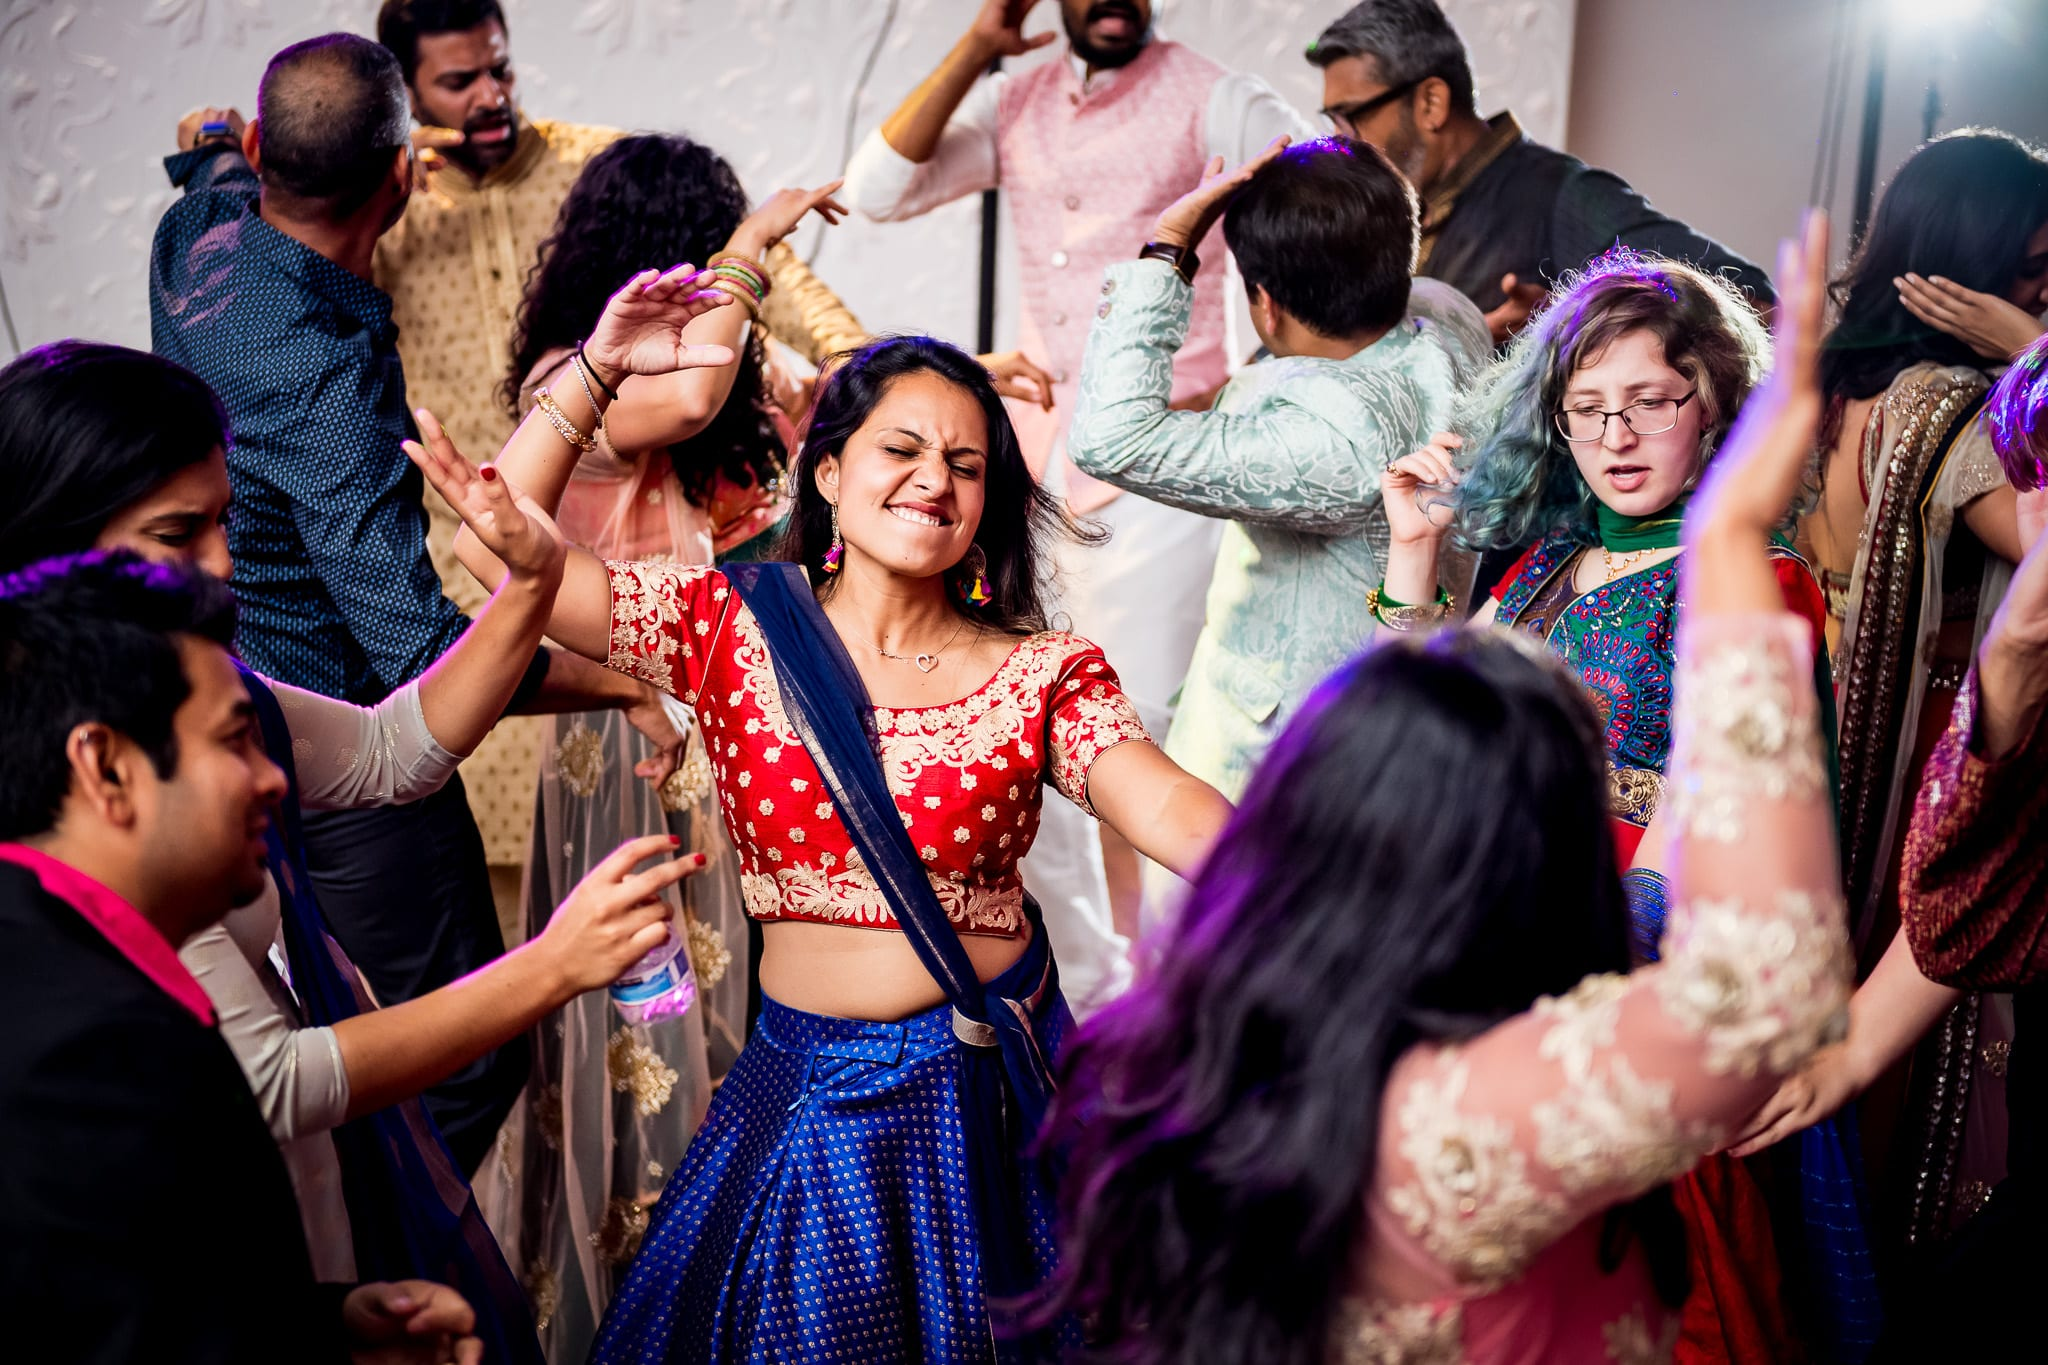 Wedding guest passionately dancing during wedding reception at The Blaisdell